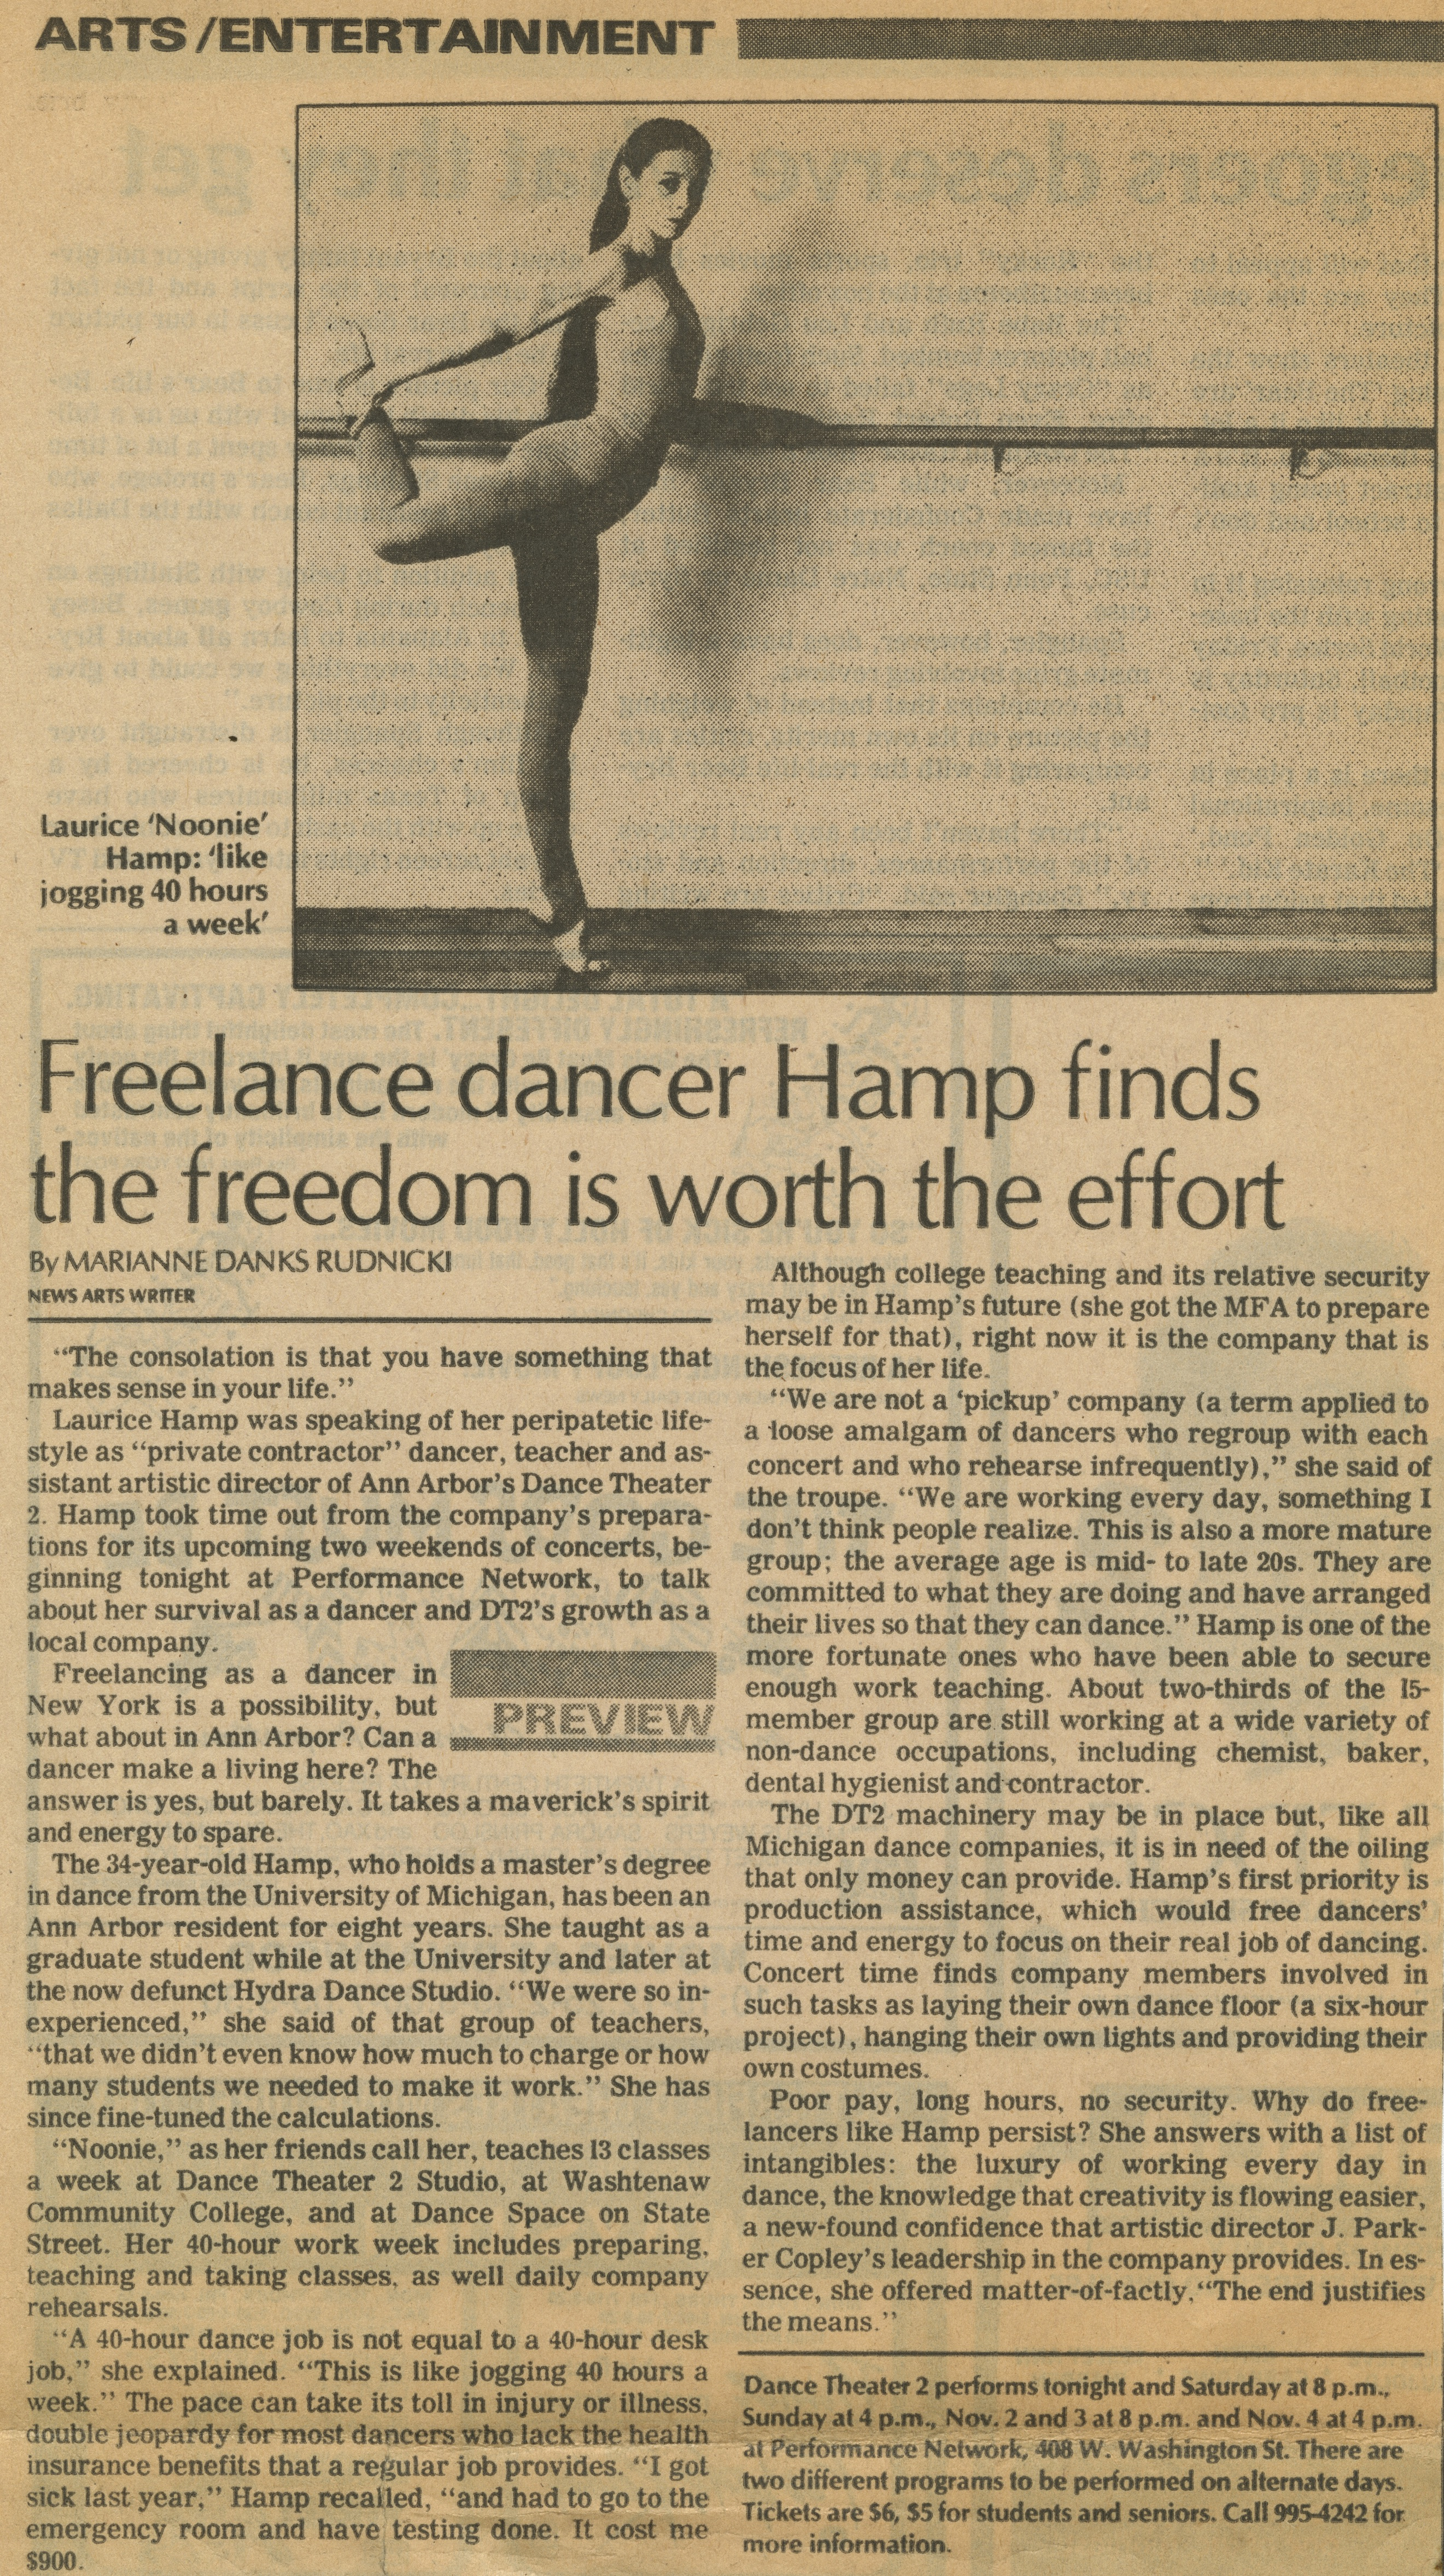 Freelance dancer Hamp finds the freedom is worth the effort image